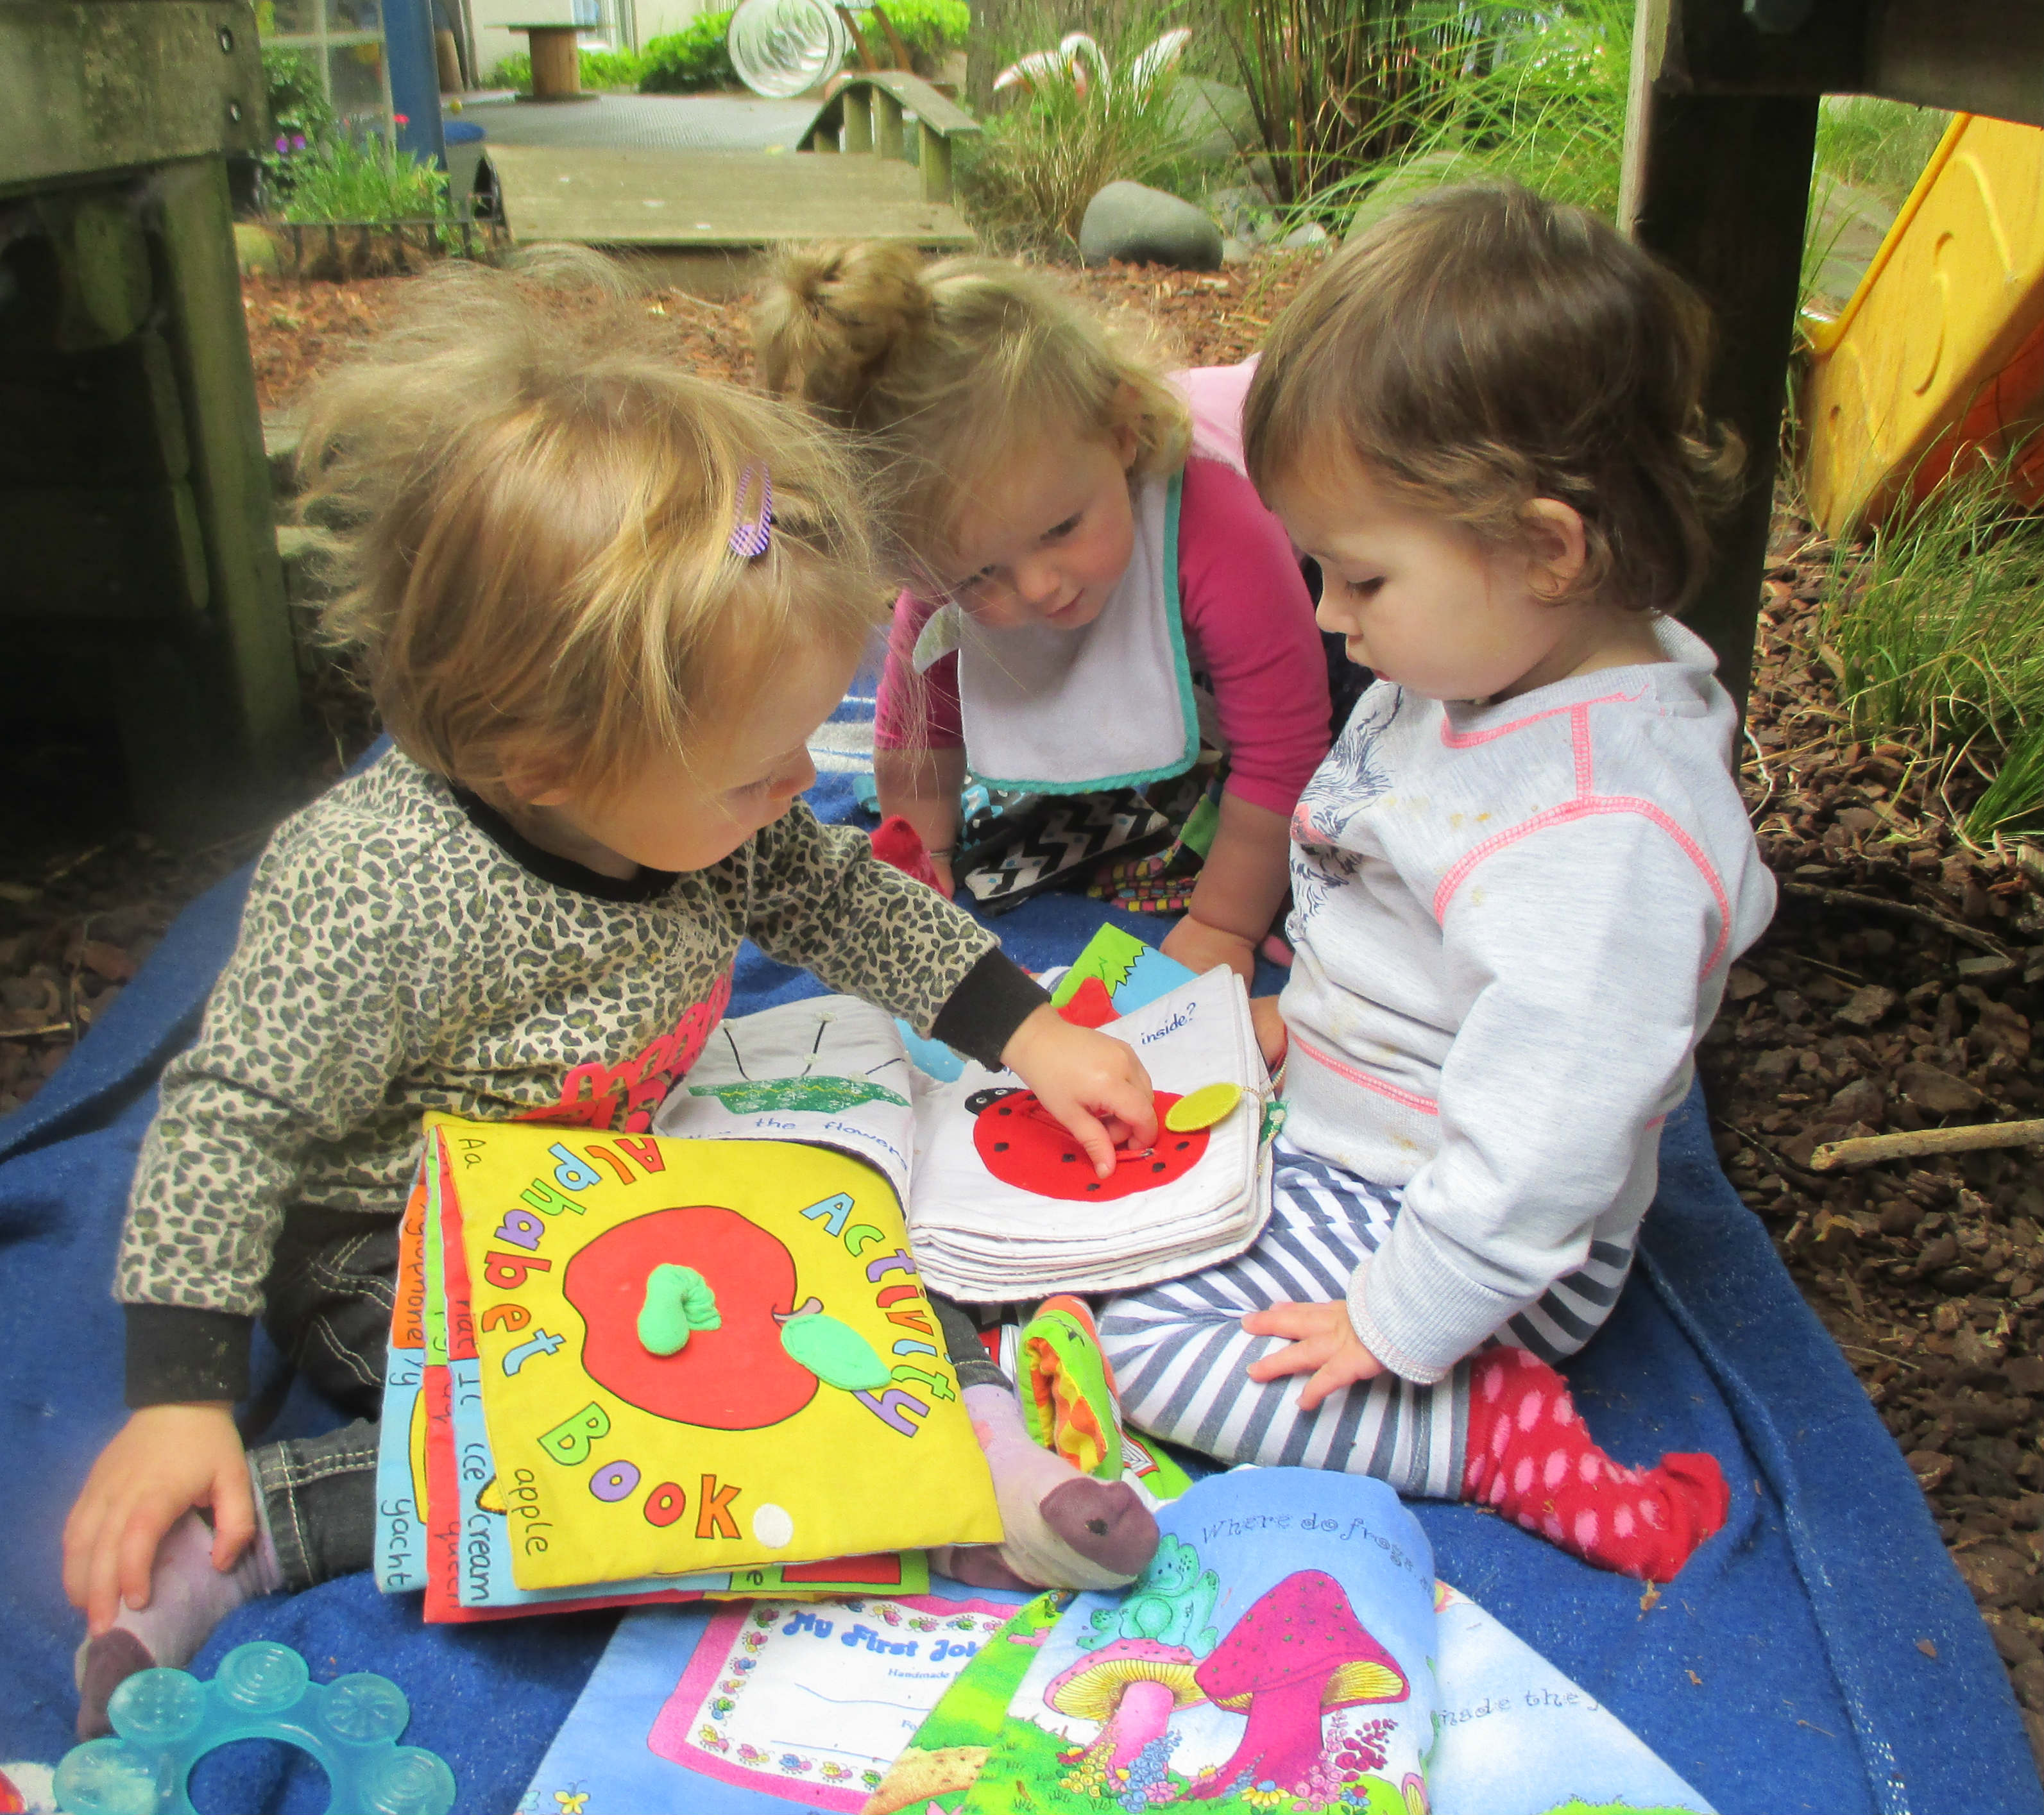 Learning together web.jpg - The Cambridge Early Learning Centre, childcare, ECE, and daycare located in Cambridge, Waikato, NZ